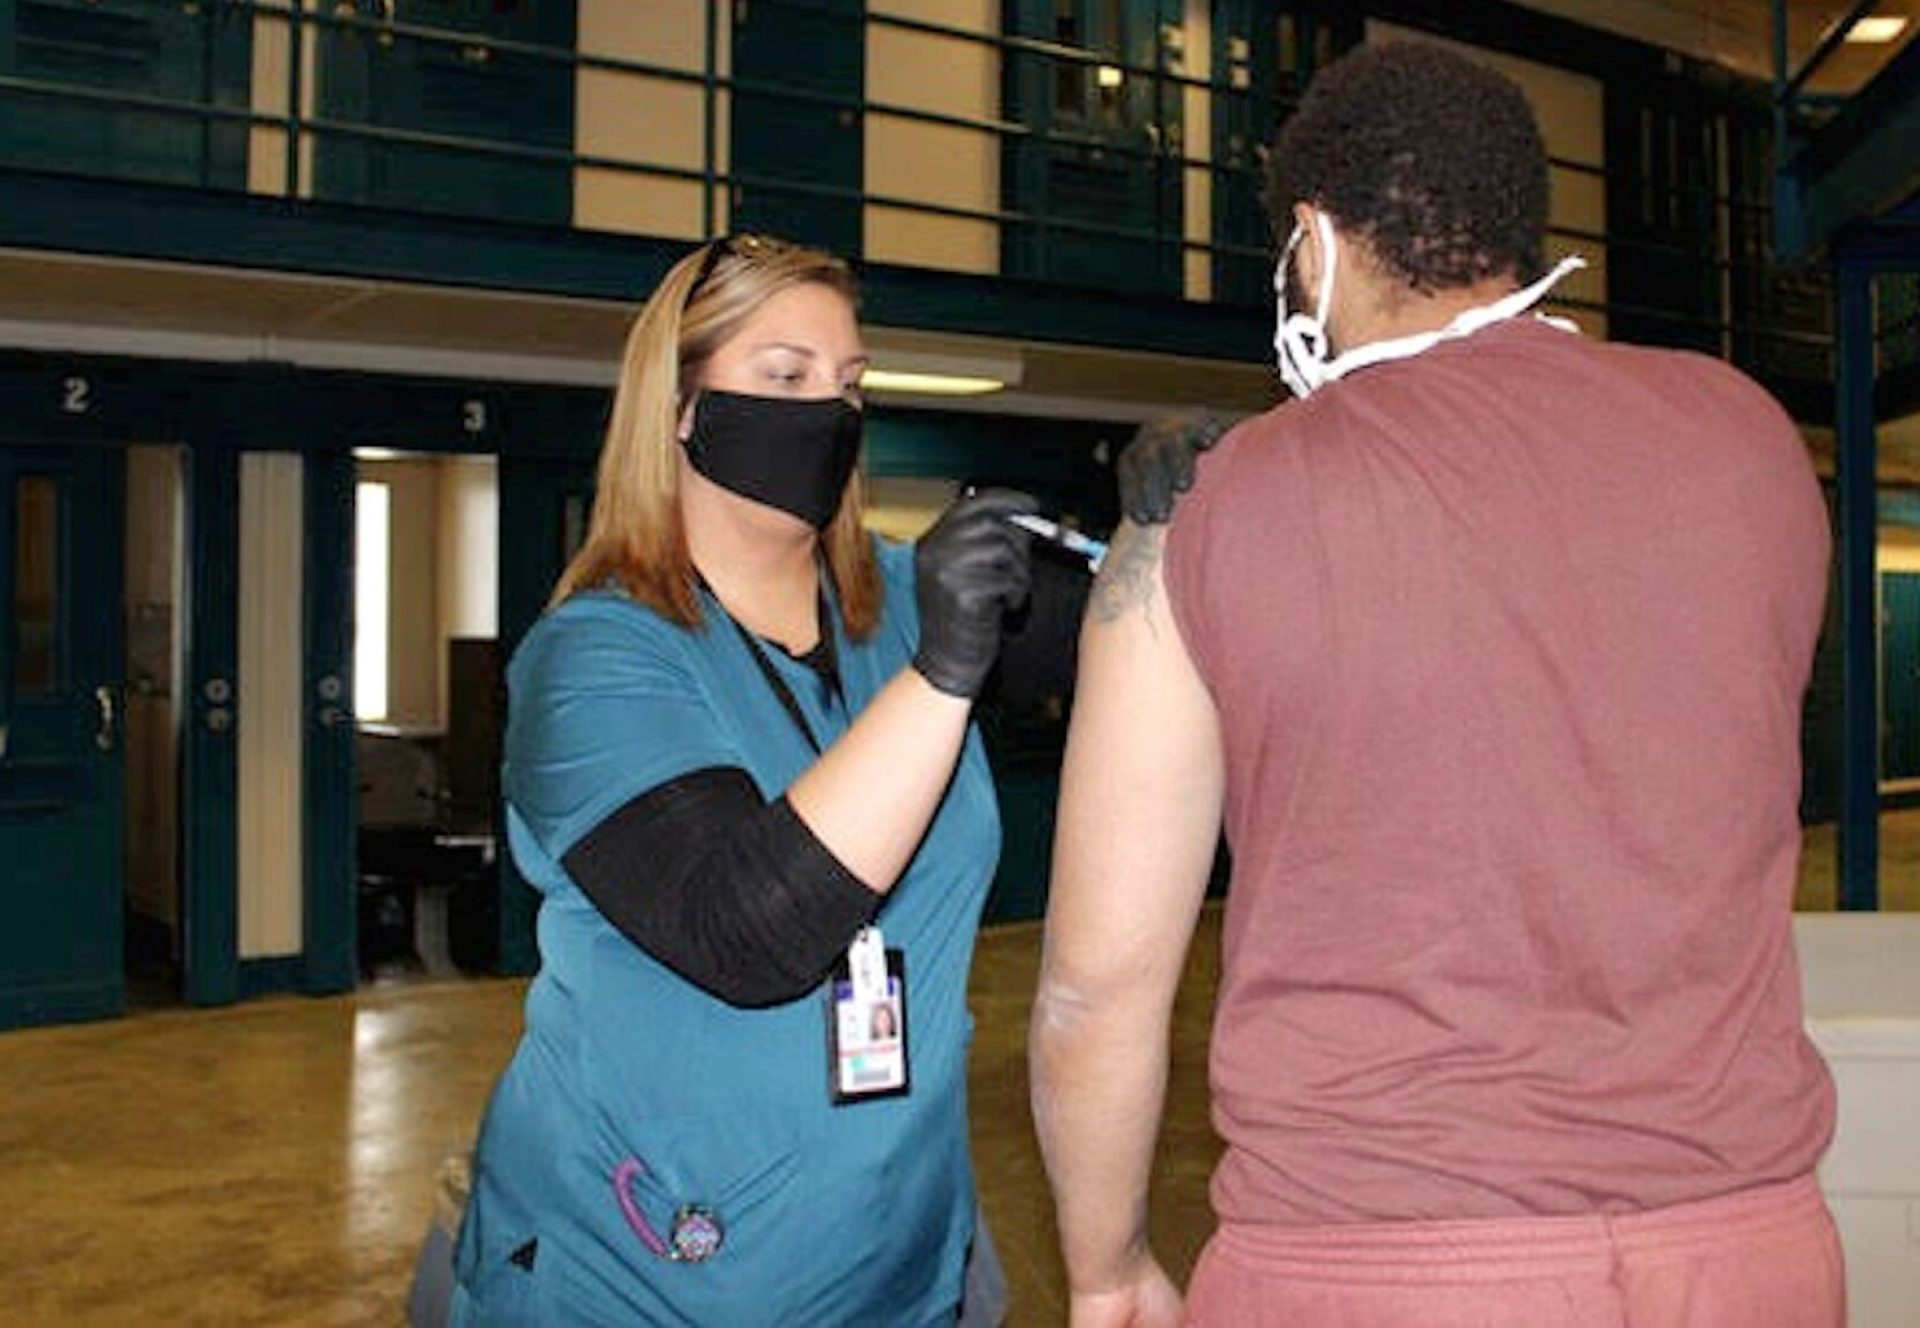 The Pennsylvania Department of Corrections is offering $25 in commissary credit to inmates who get the coronavirus vaccine, and has seen promising results.